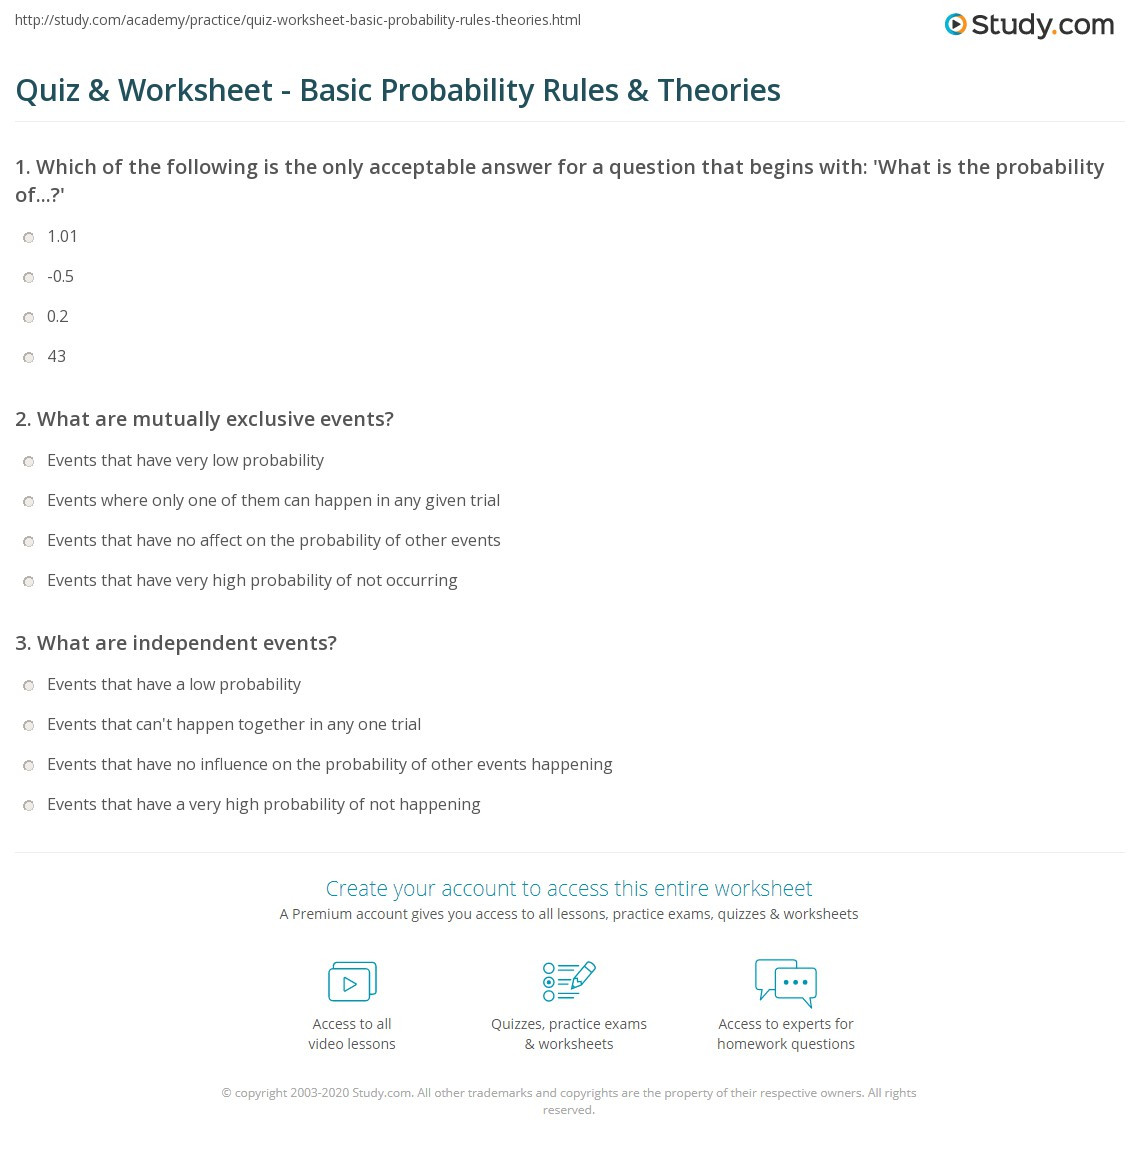 quiz worksheet basic probability rules theories